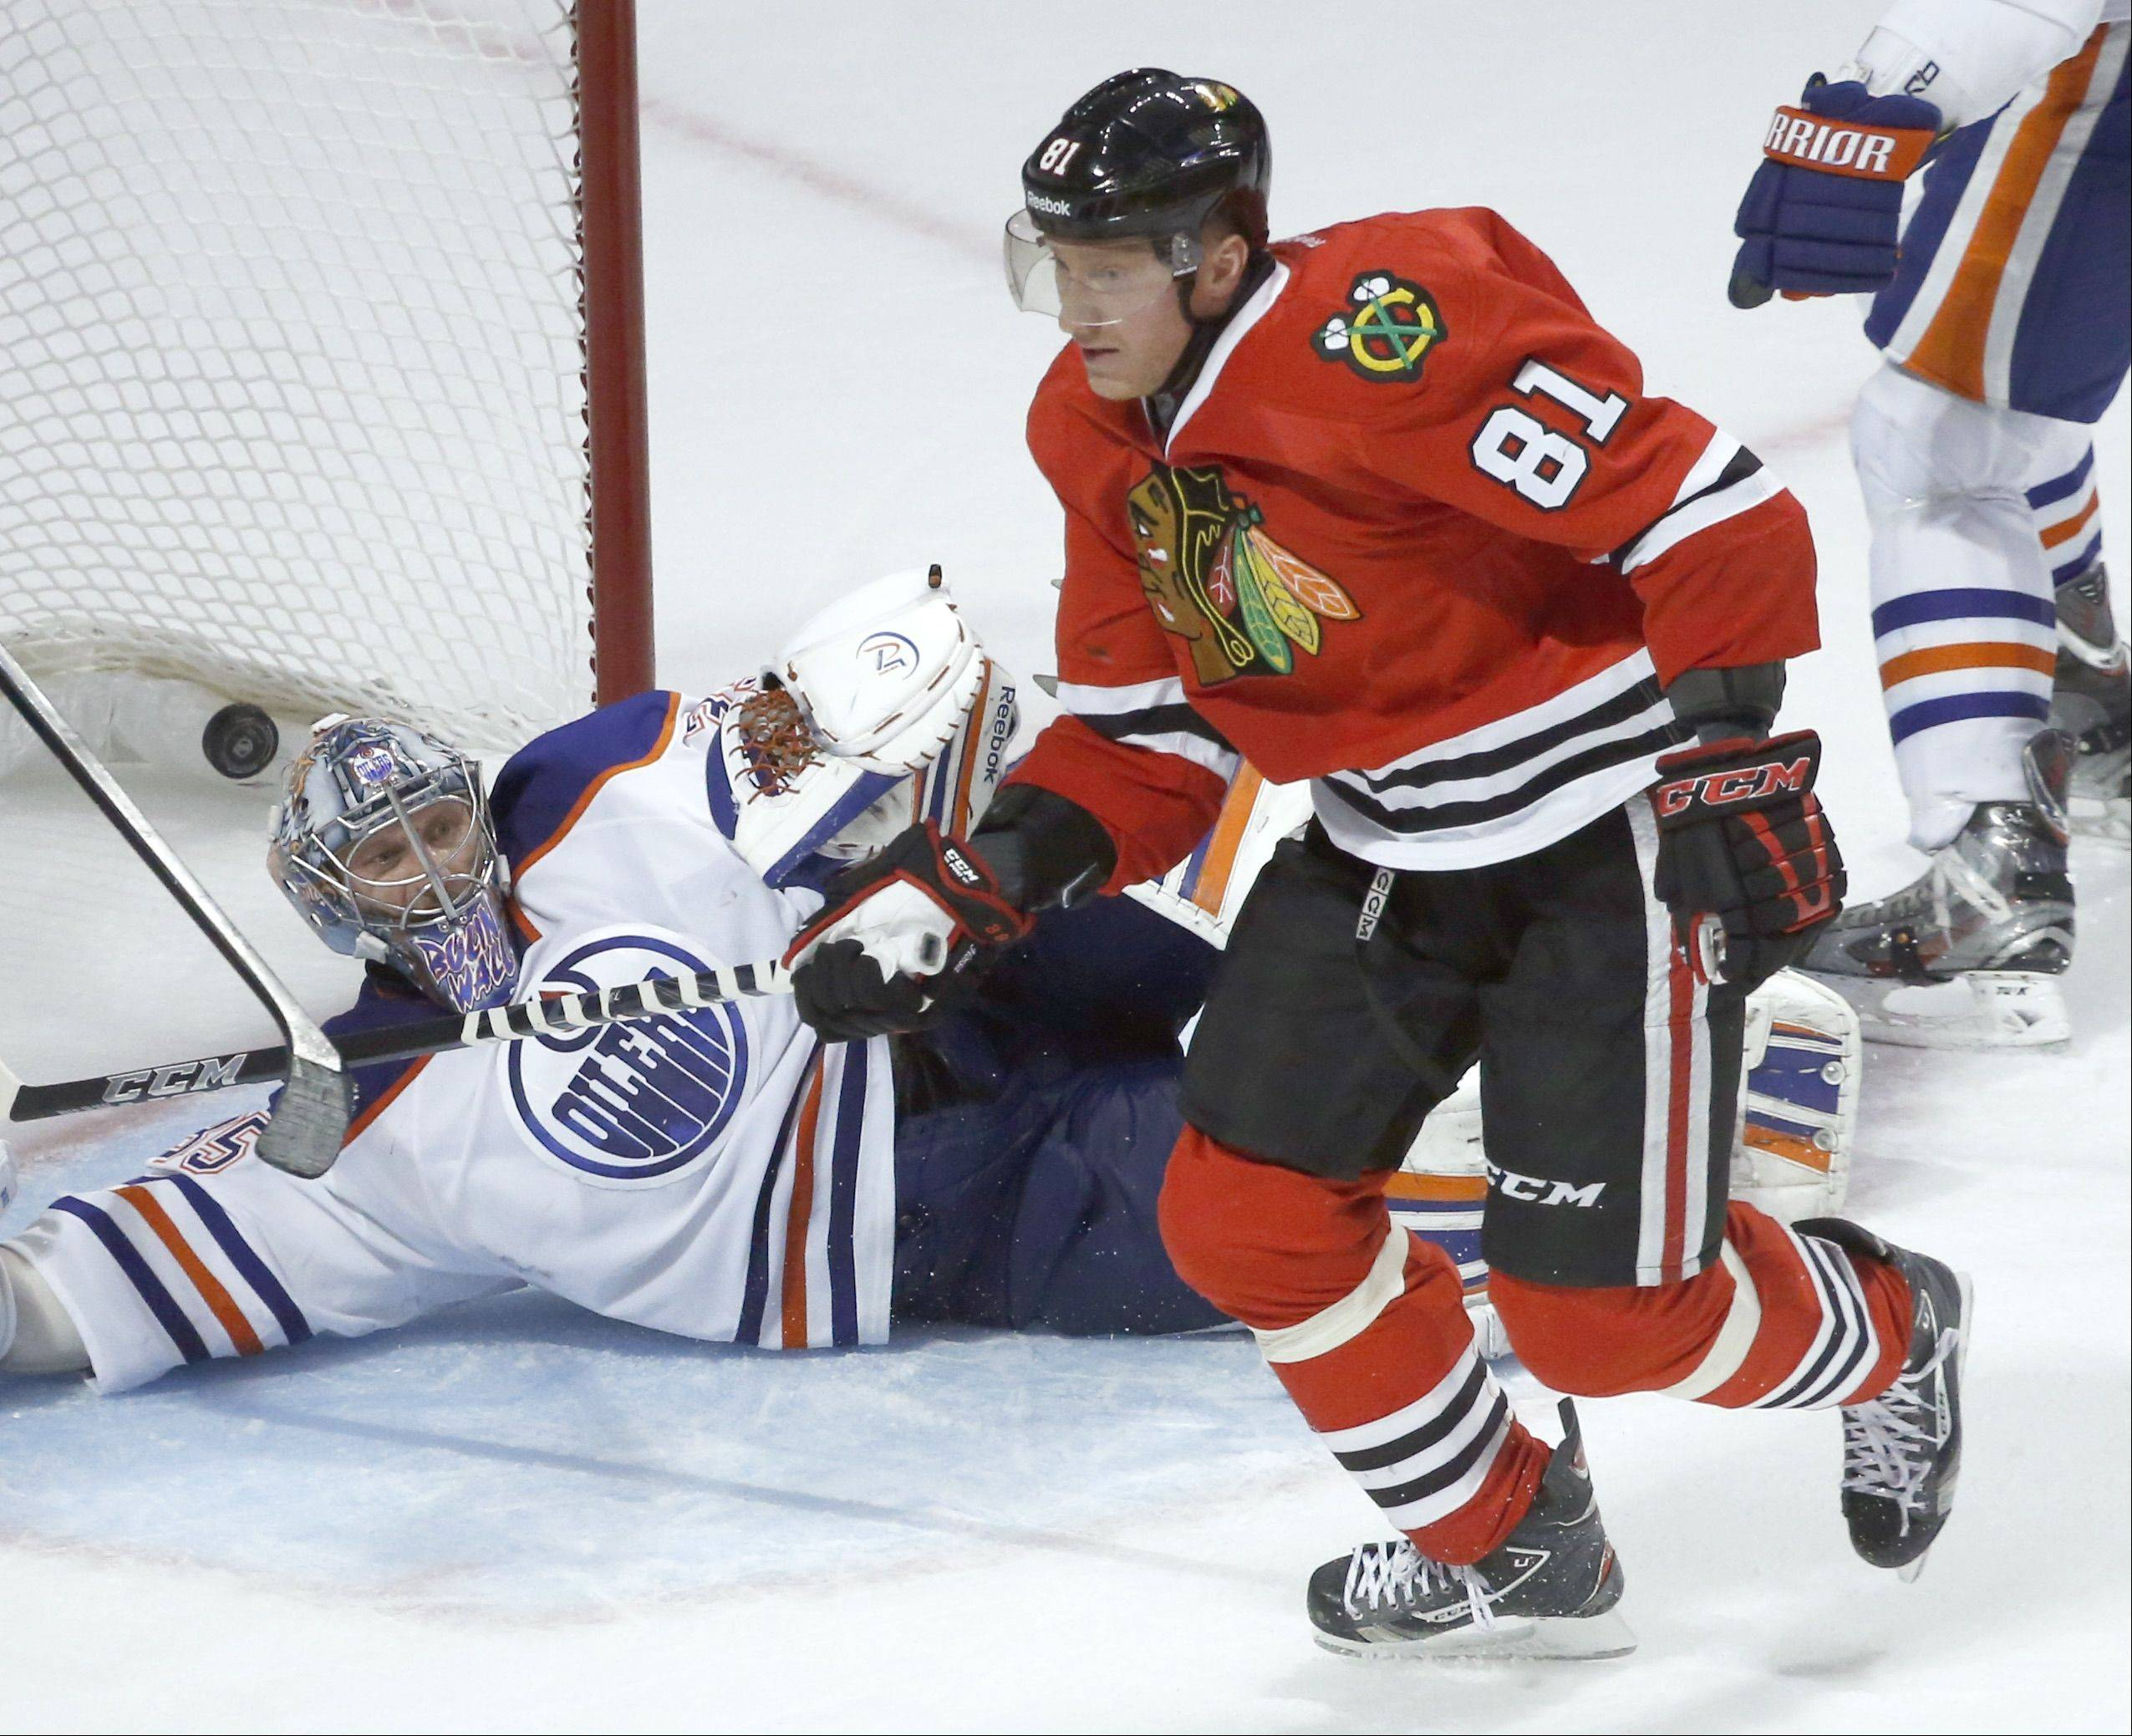 The Blackhawks� Marian Hossa begins to celebrate after scoring the winning goal past Oilers goalie Nikolai Khabibulin during the overtime period Monday night at the United Center.